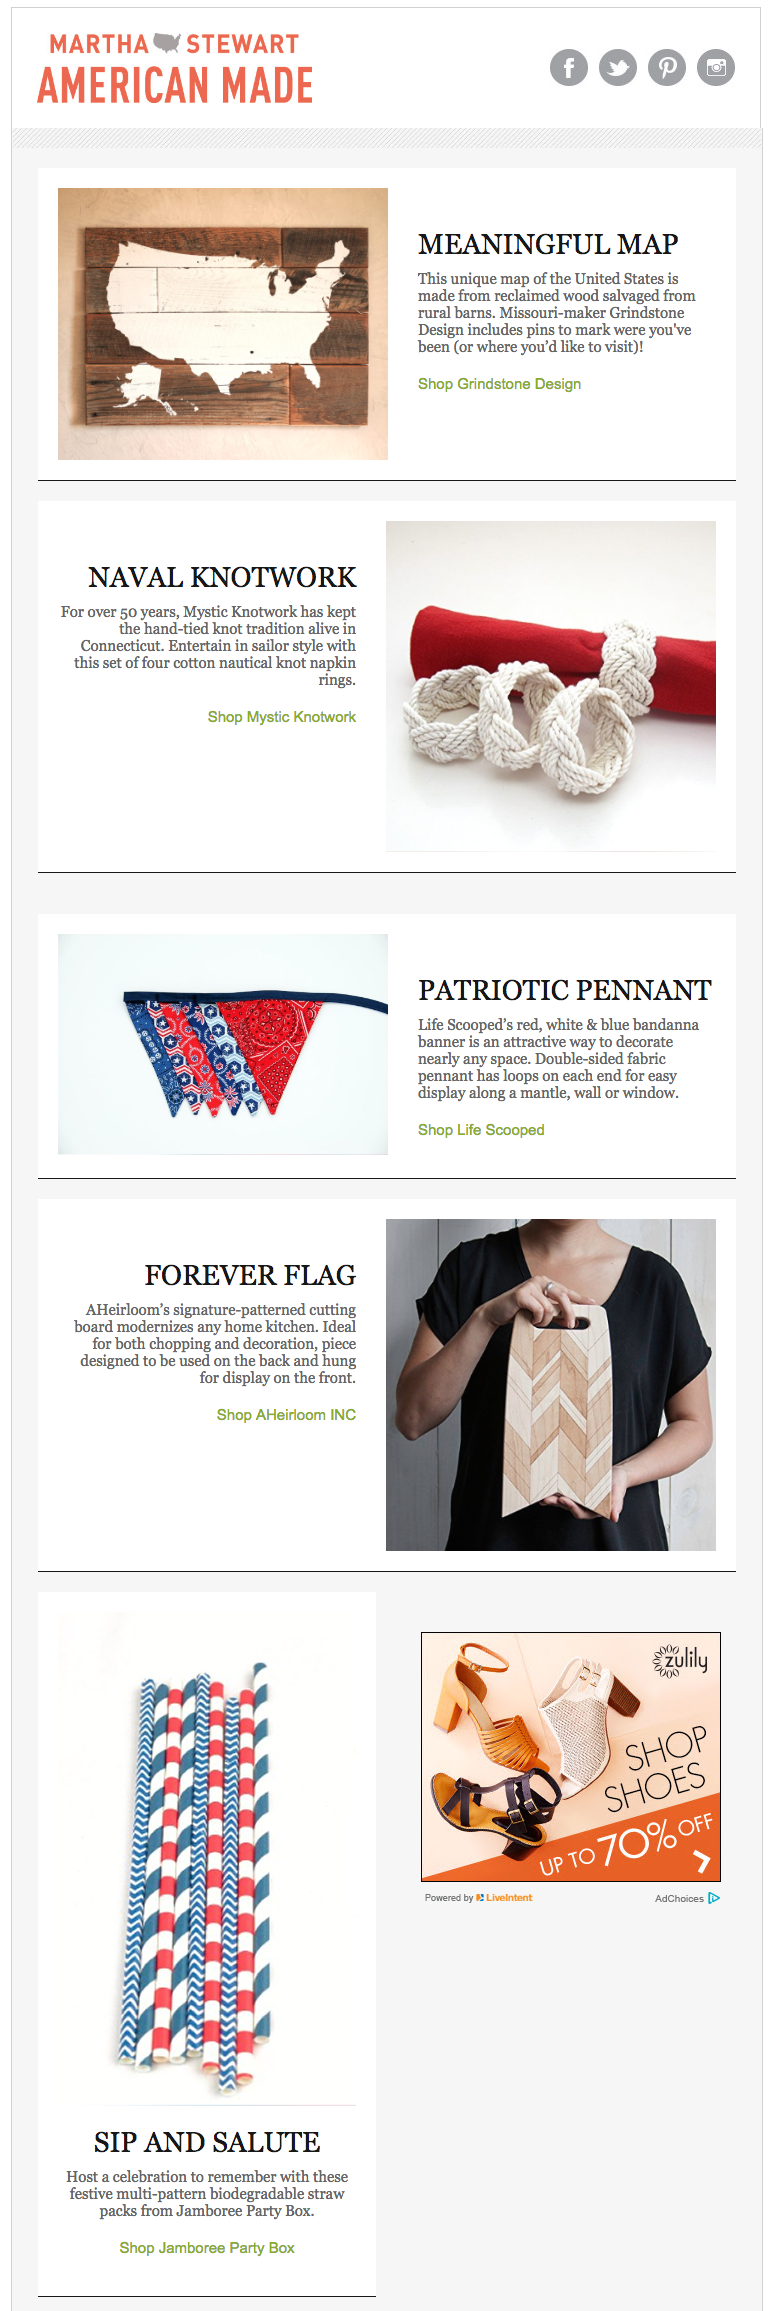 martha stewart american made 4th of July email designs